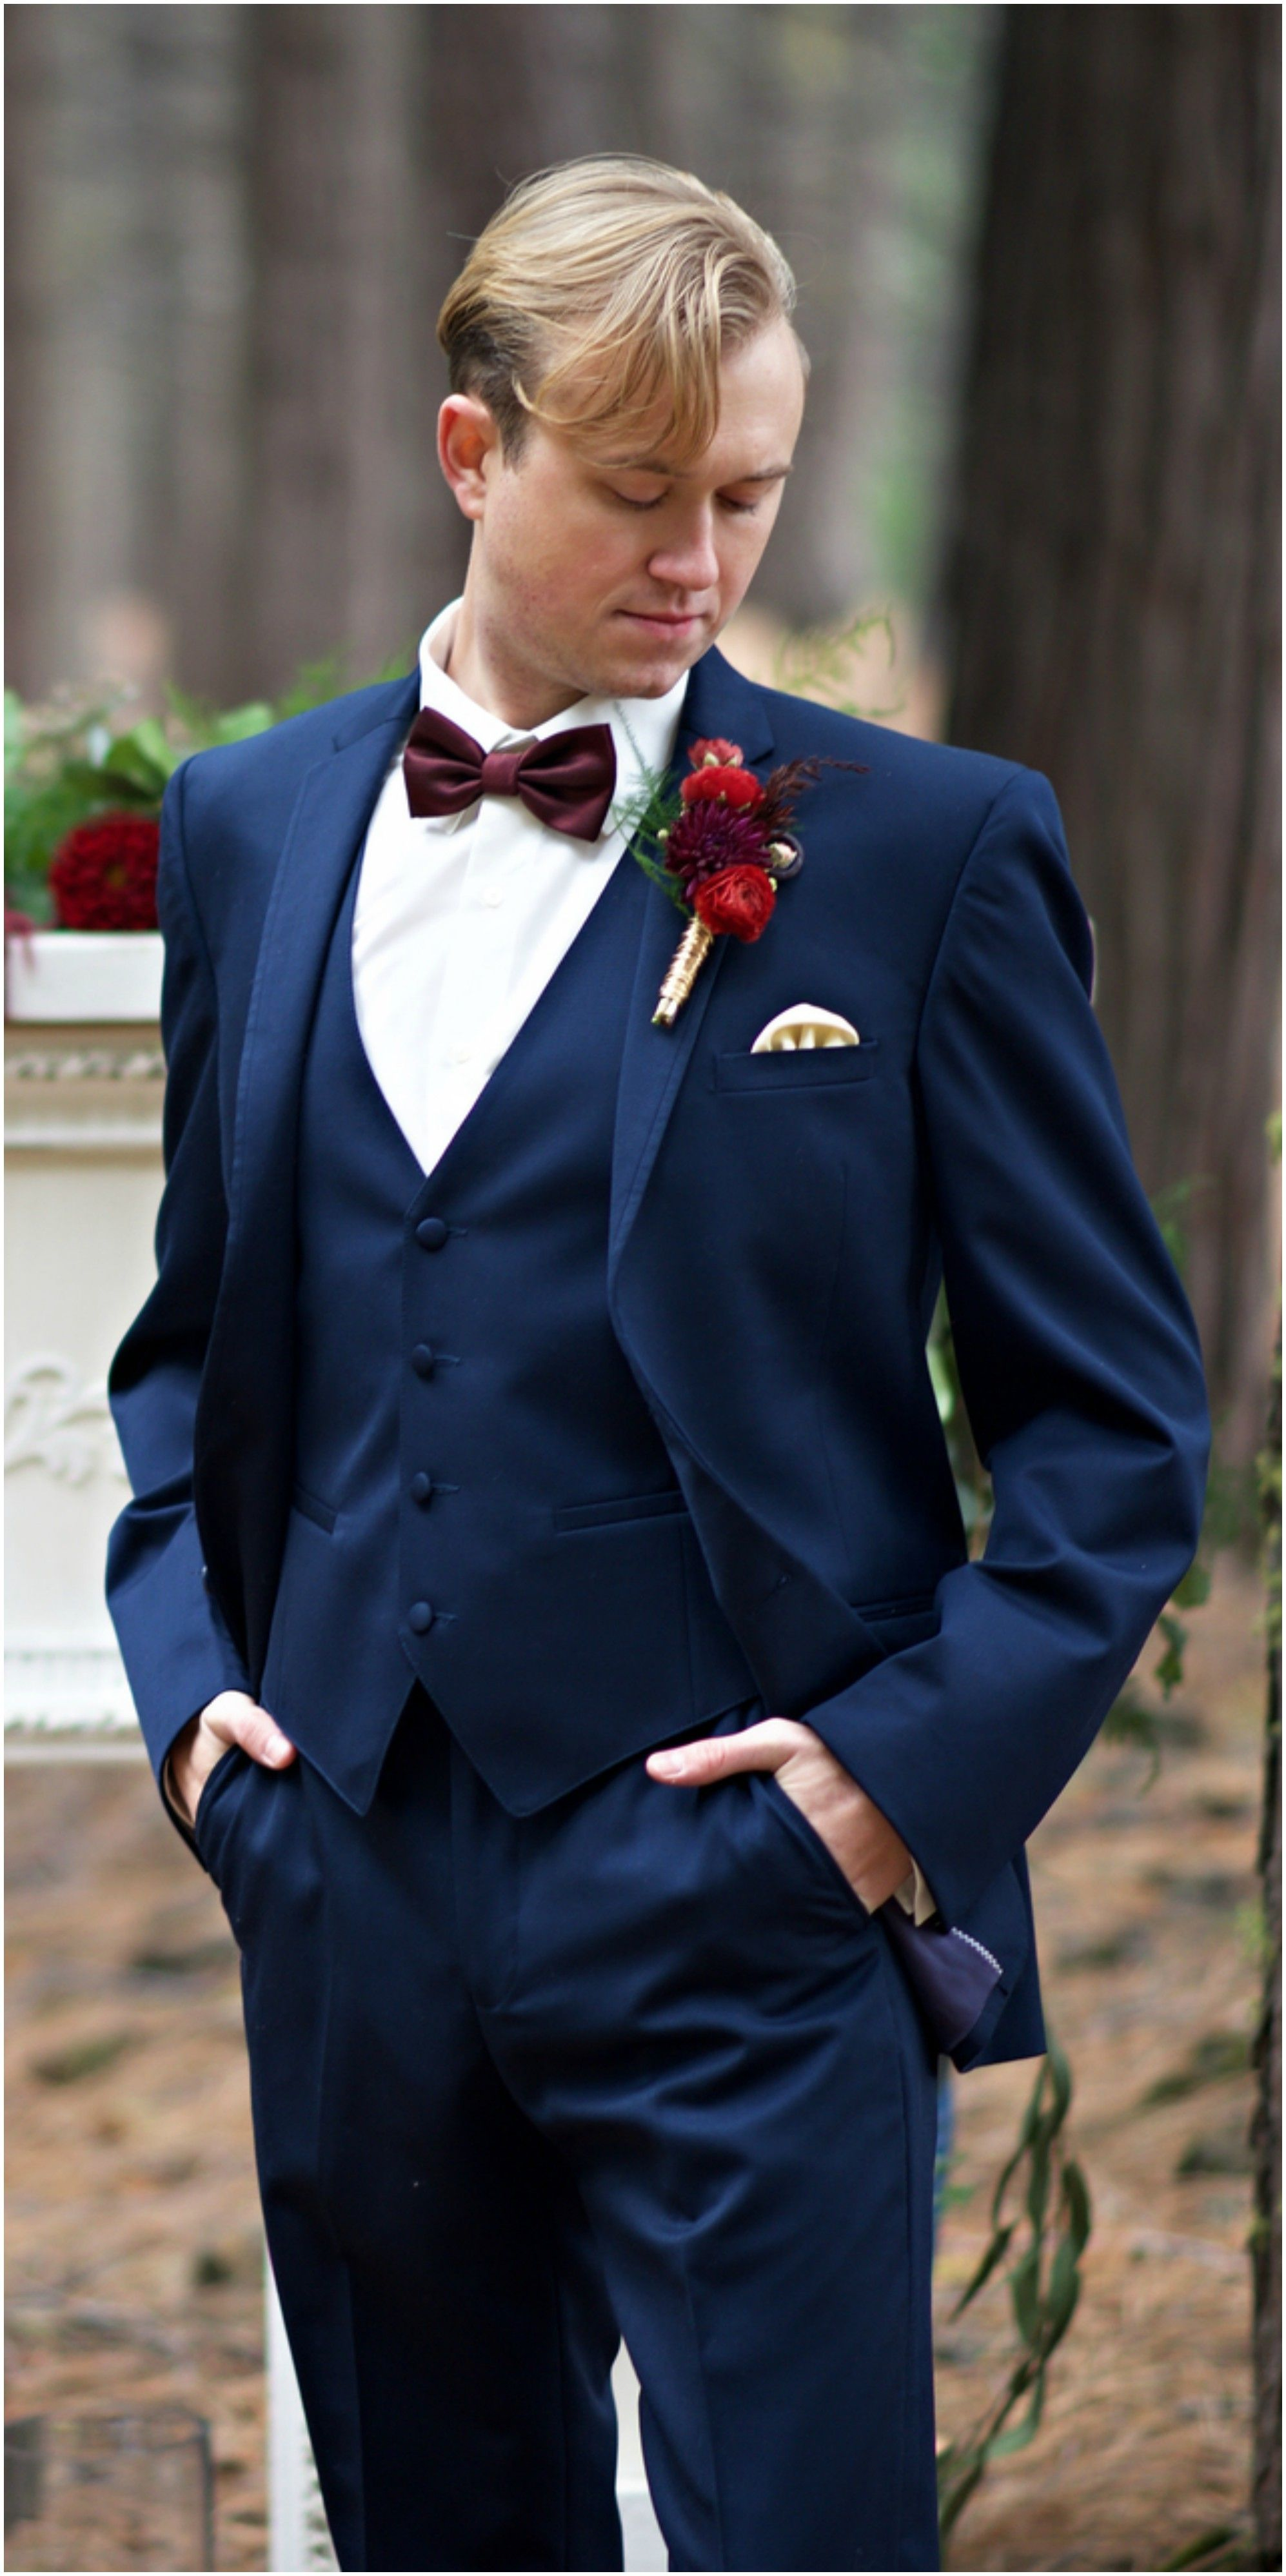 Stylish Groom Attire Navy Blue Suit Red Floral Bout Maroon Bow Tie Modern Image Photography Blue Suit Wedding Navy Blue Groomsmen Navy Blue Suit Wedding